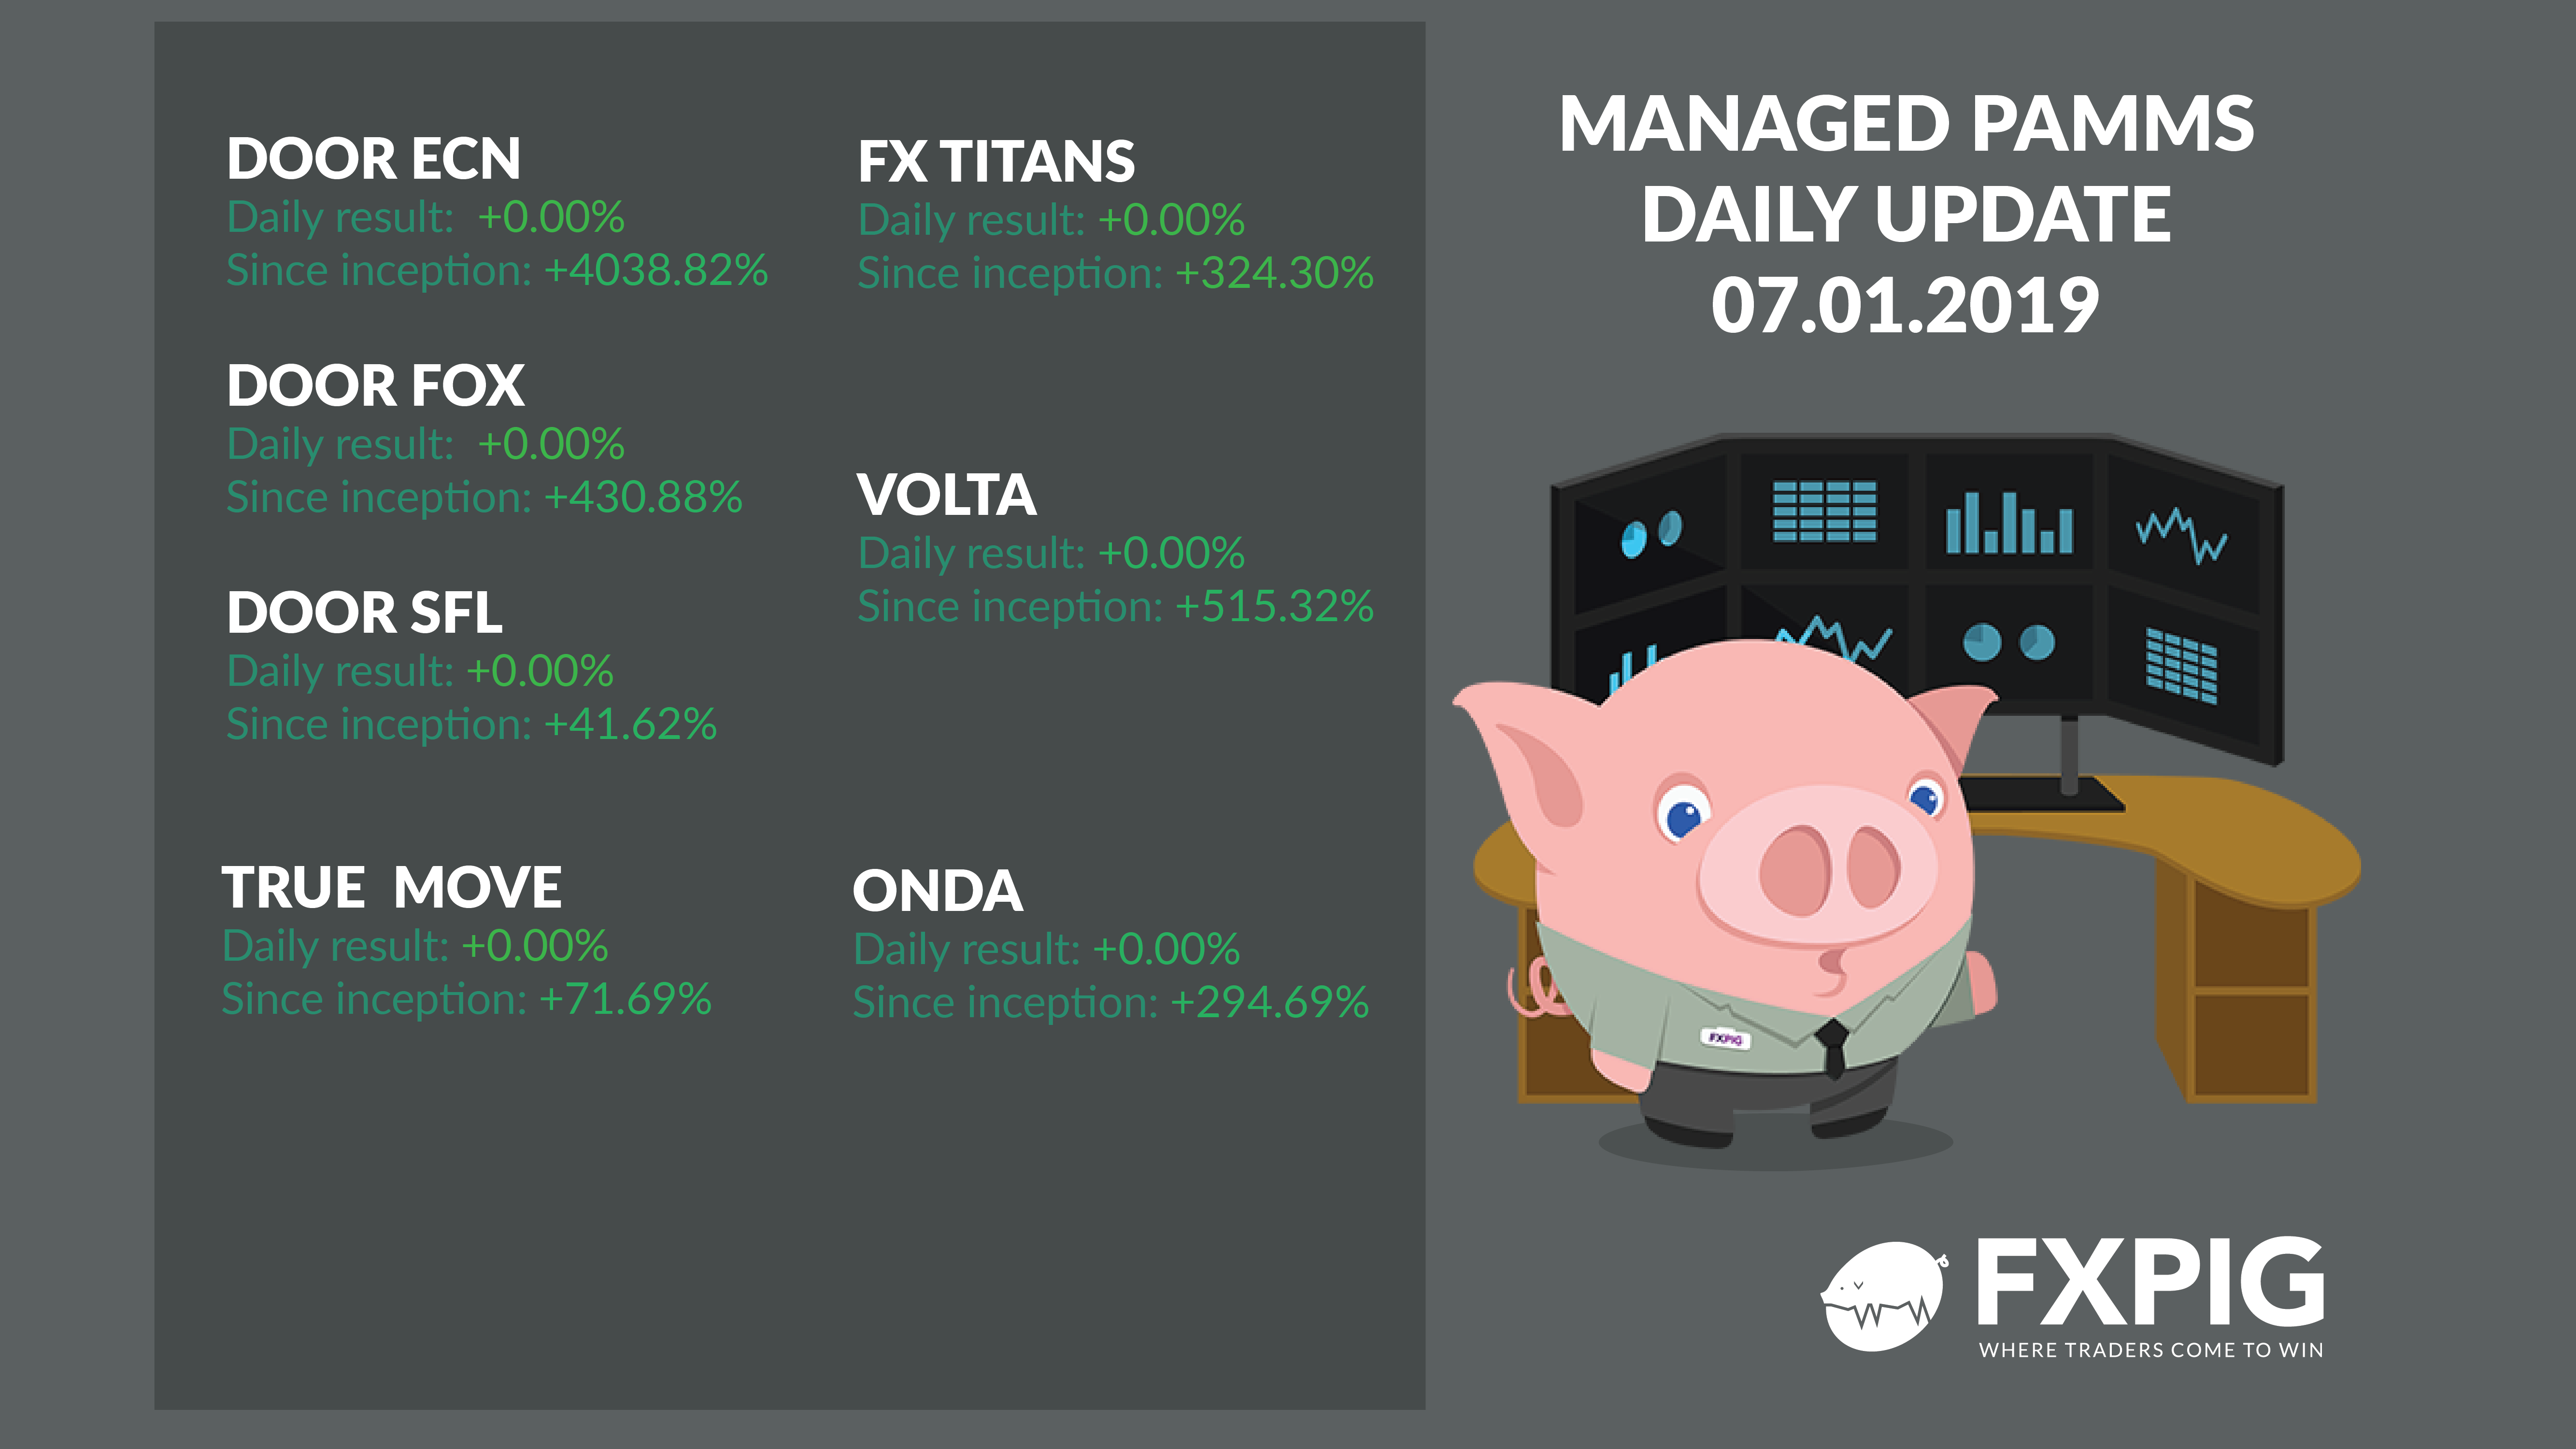 Forex_Trading_Fx_Trader_FXPIG_PAMMS_MANAGED_ACCOUNTS_PROFIT_07.01.2019